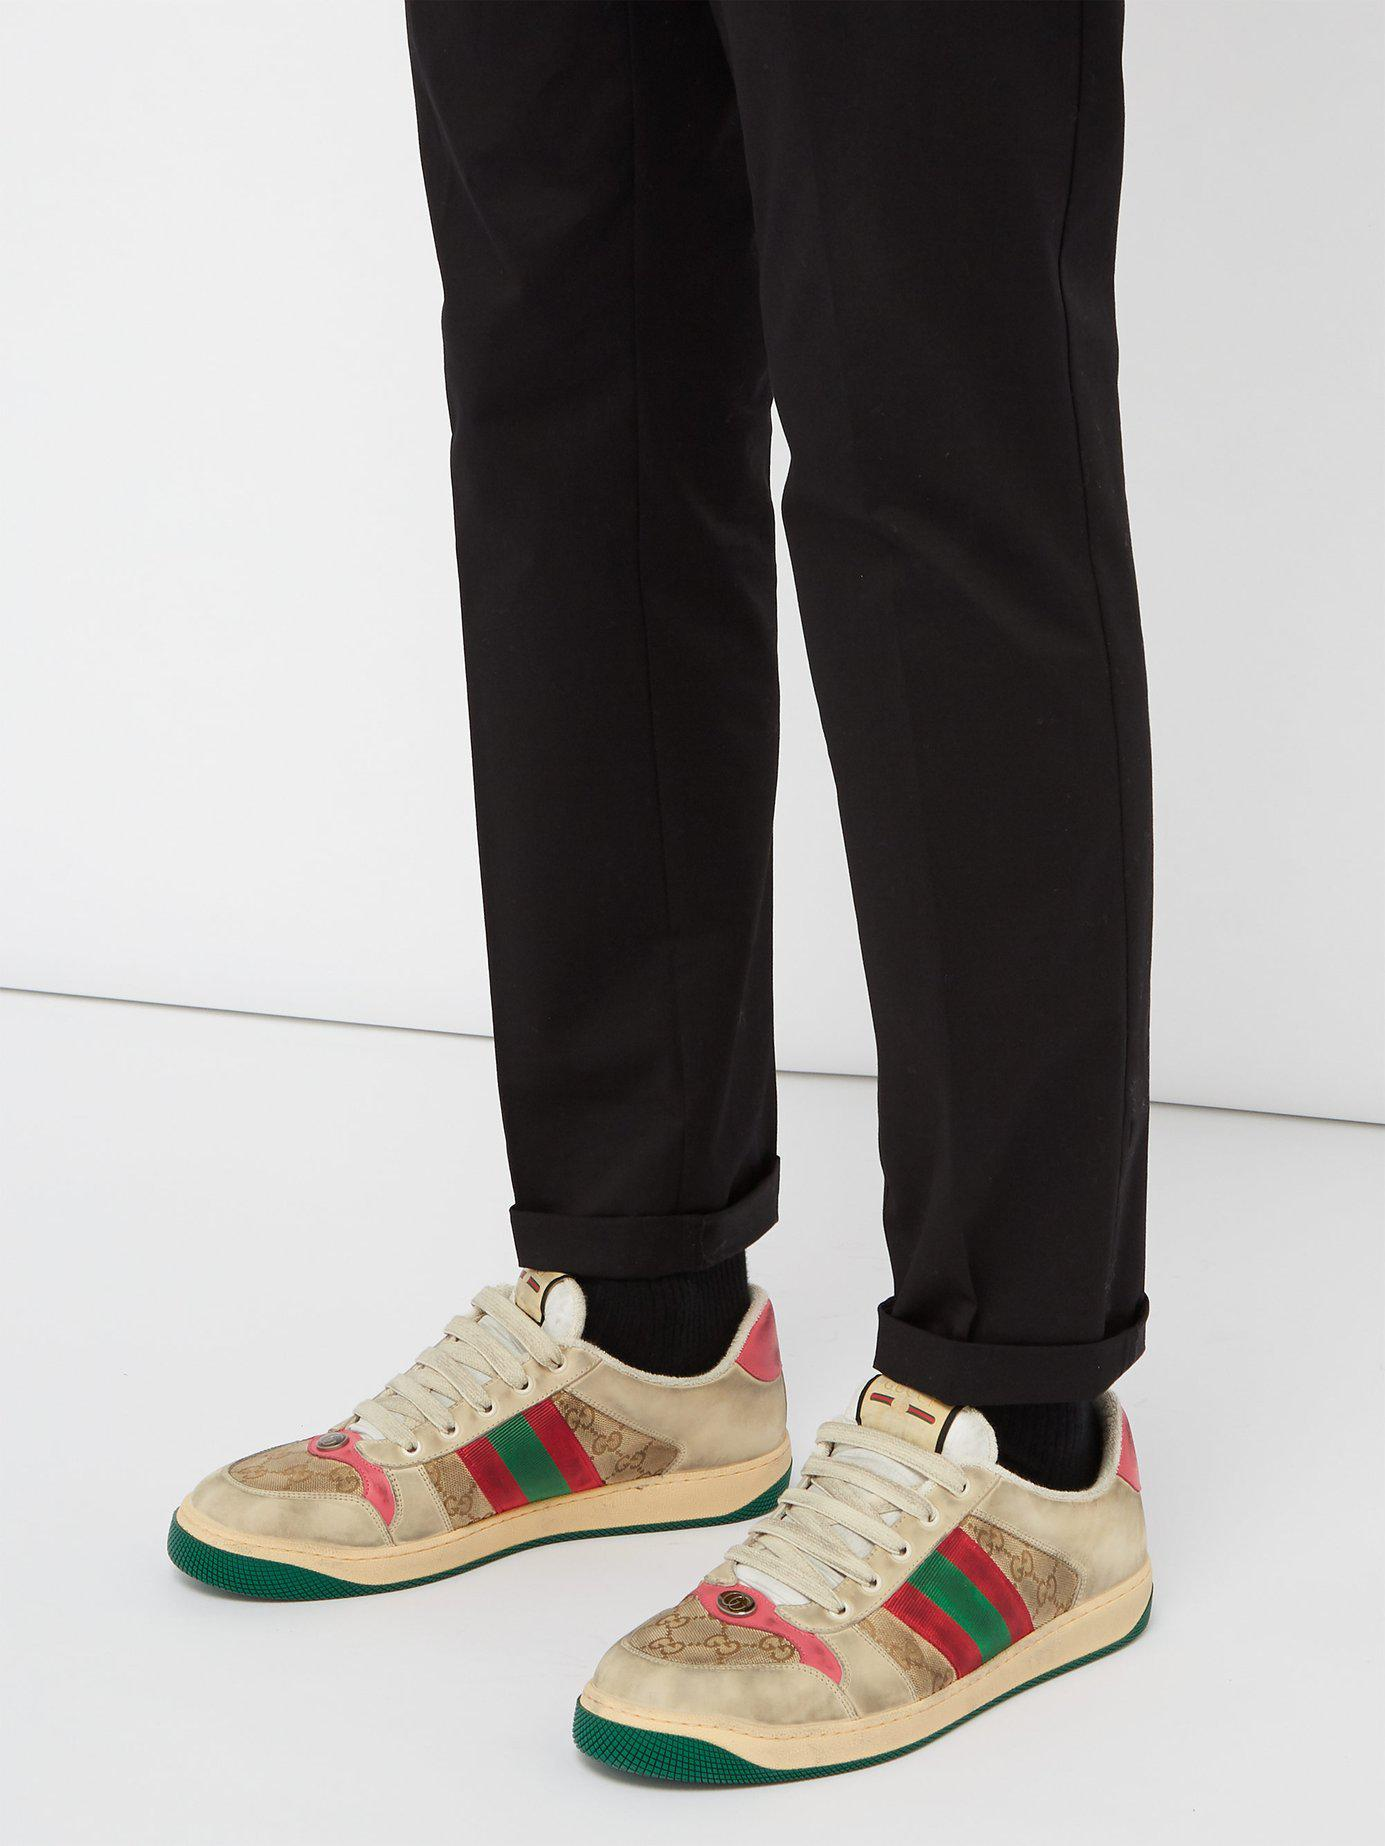 0dc0abf4e89 Gucci - Multicolor Screener Gg Supreme Leather Trainers for Men - Lyst.  View fullscreen